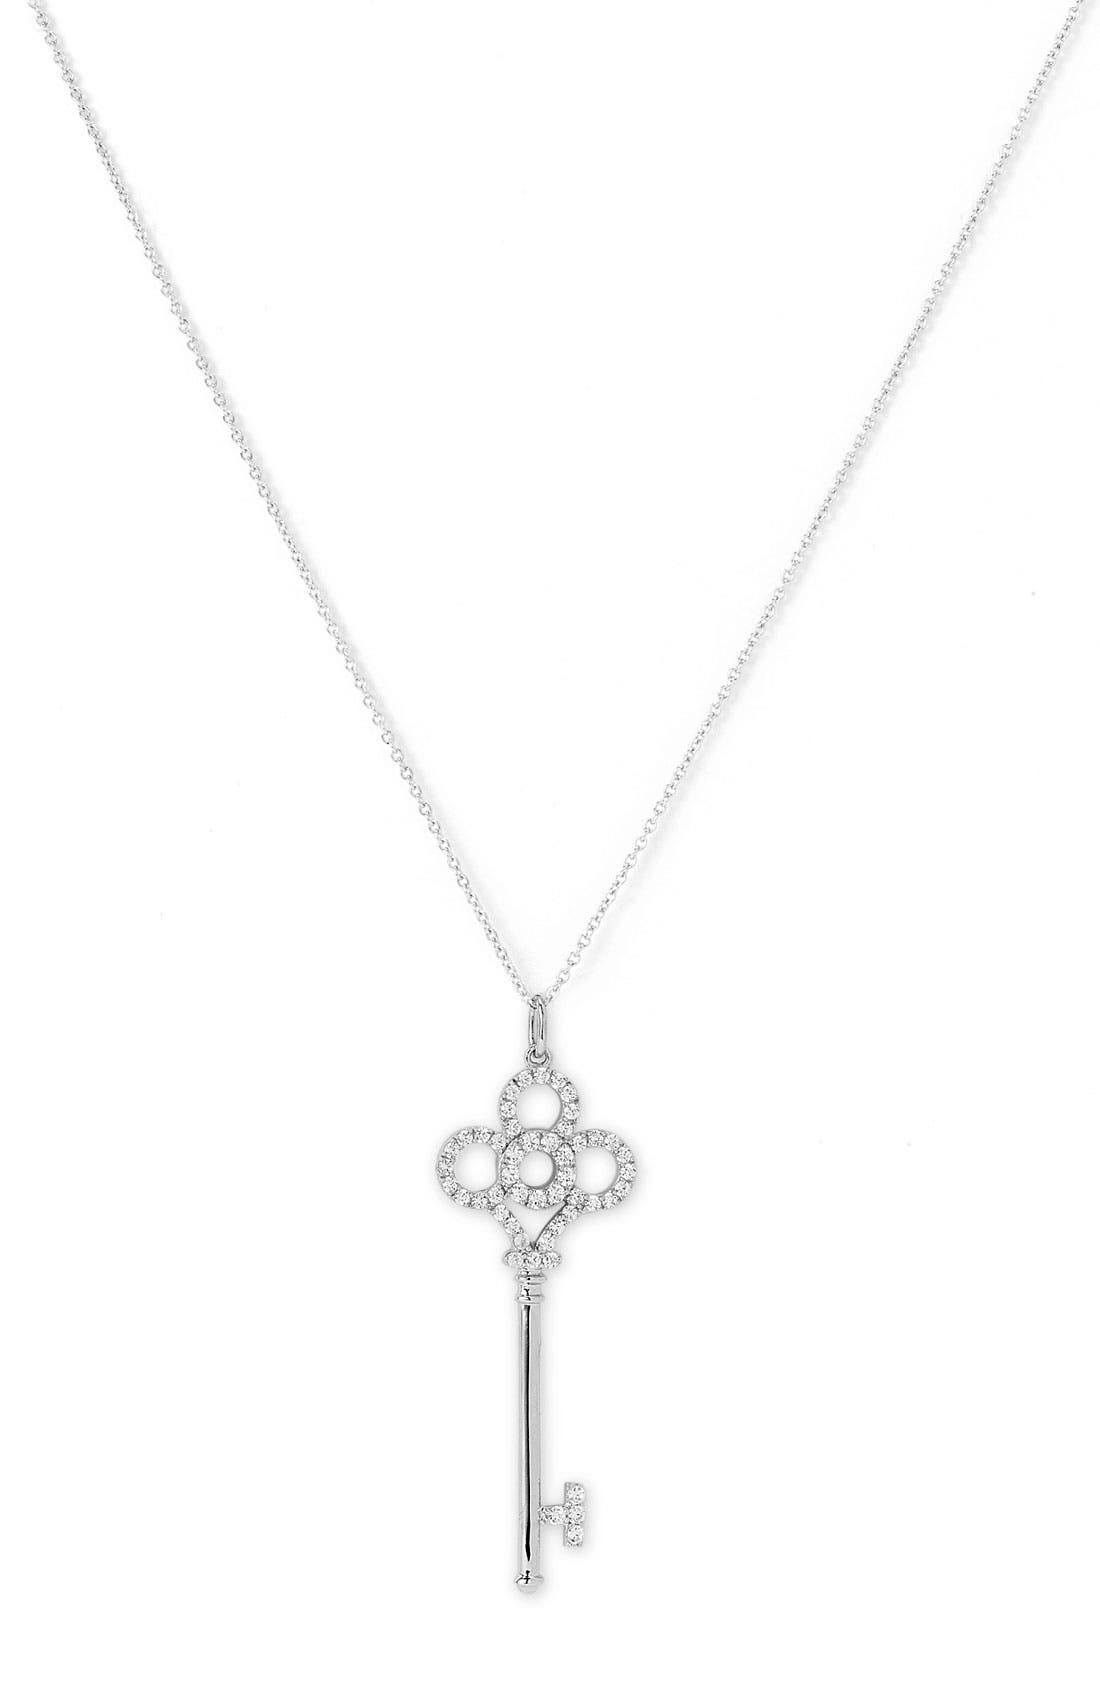 Main Image - Nordstrom Key Pendant Necklace